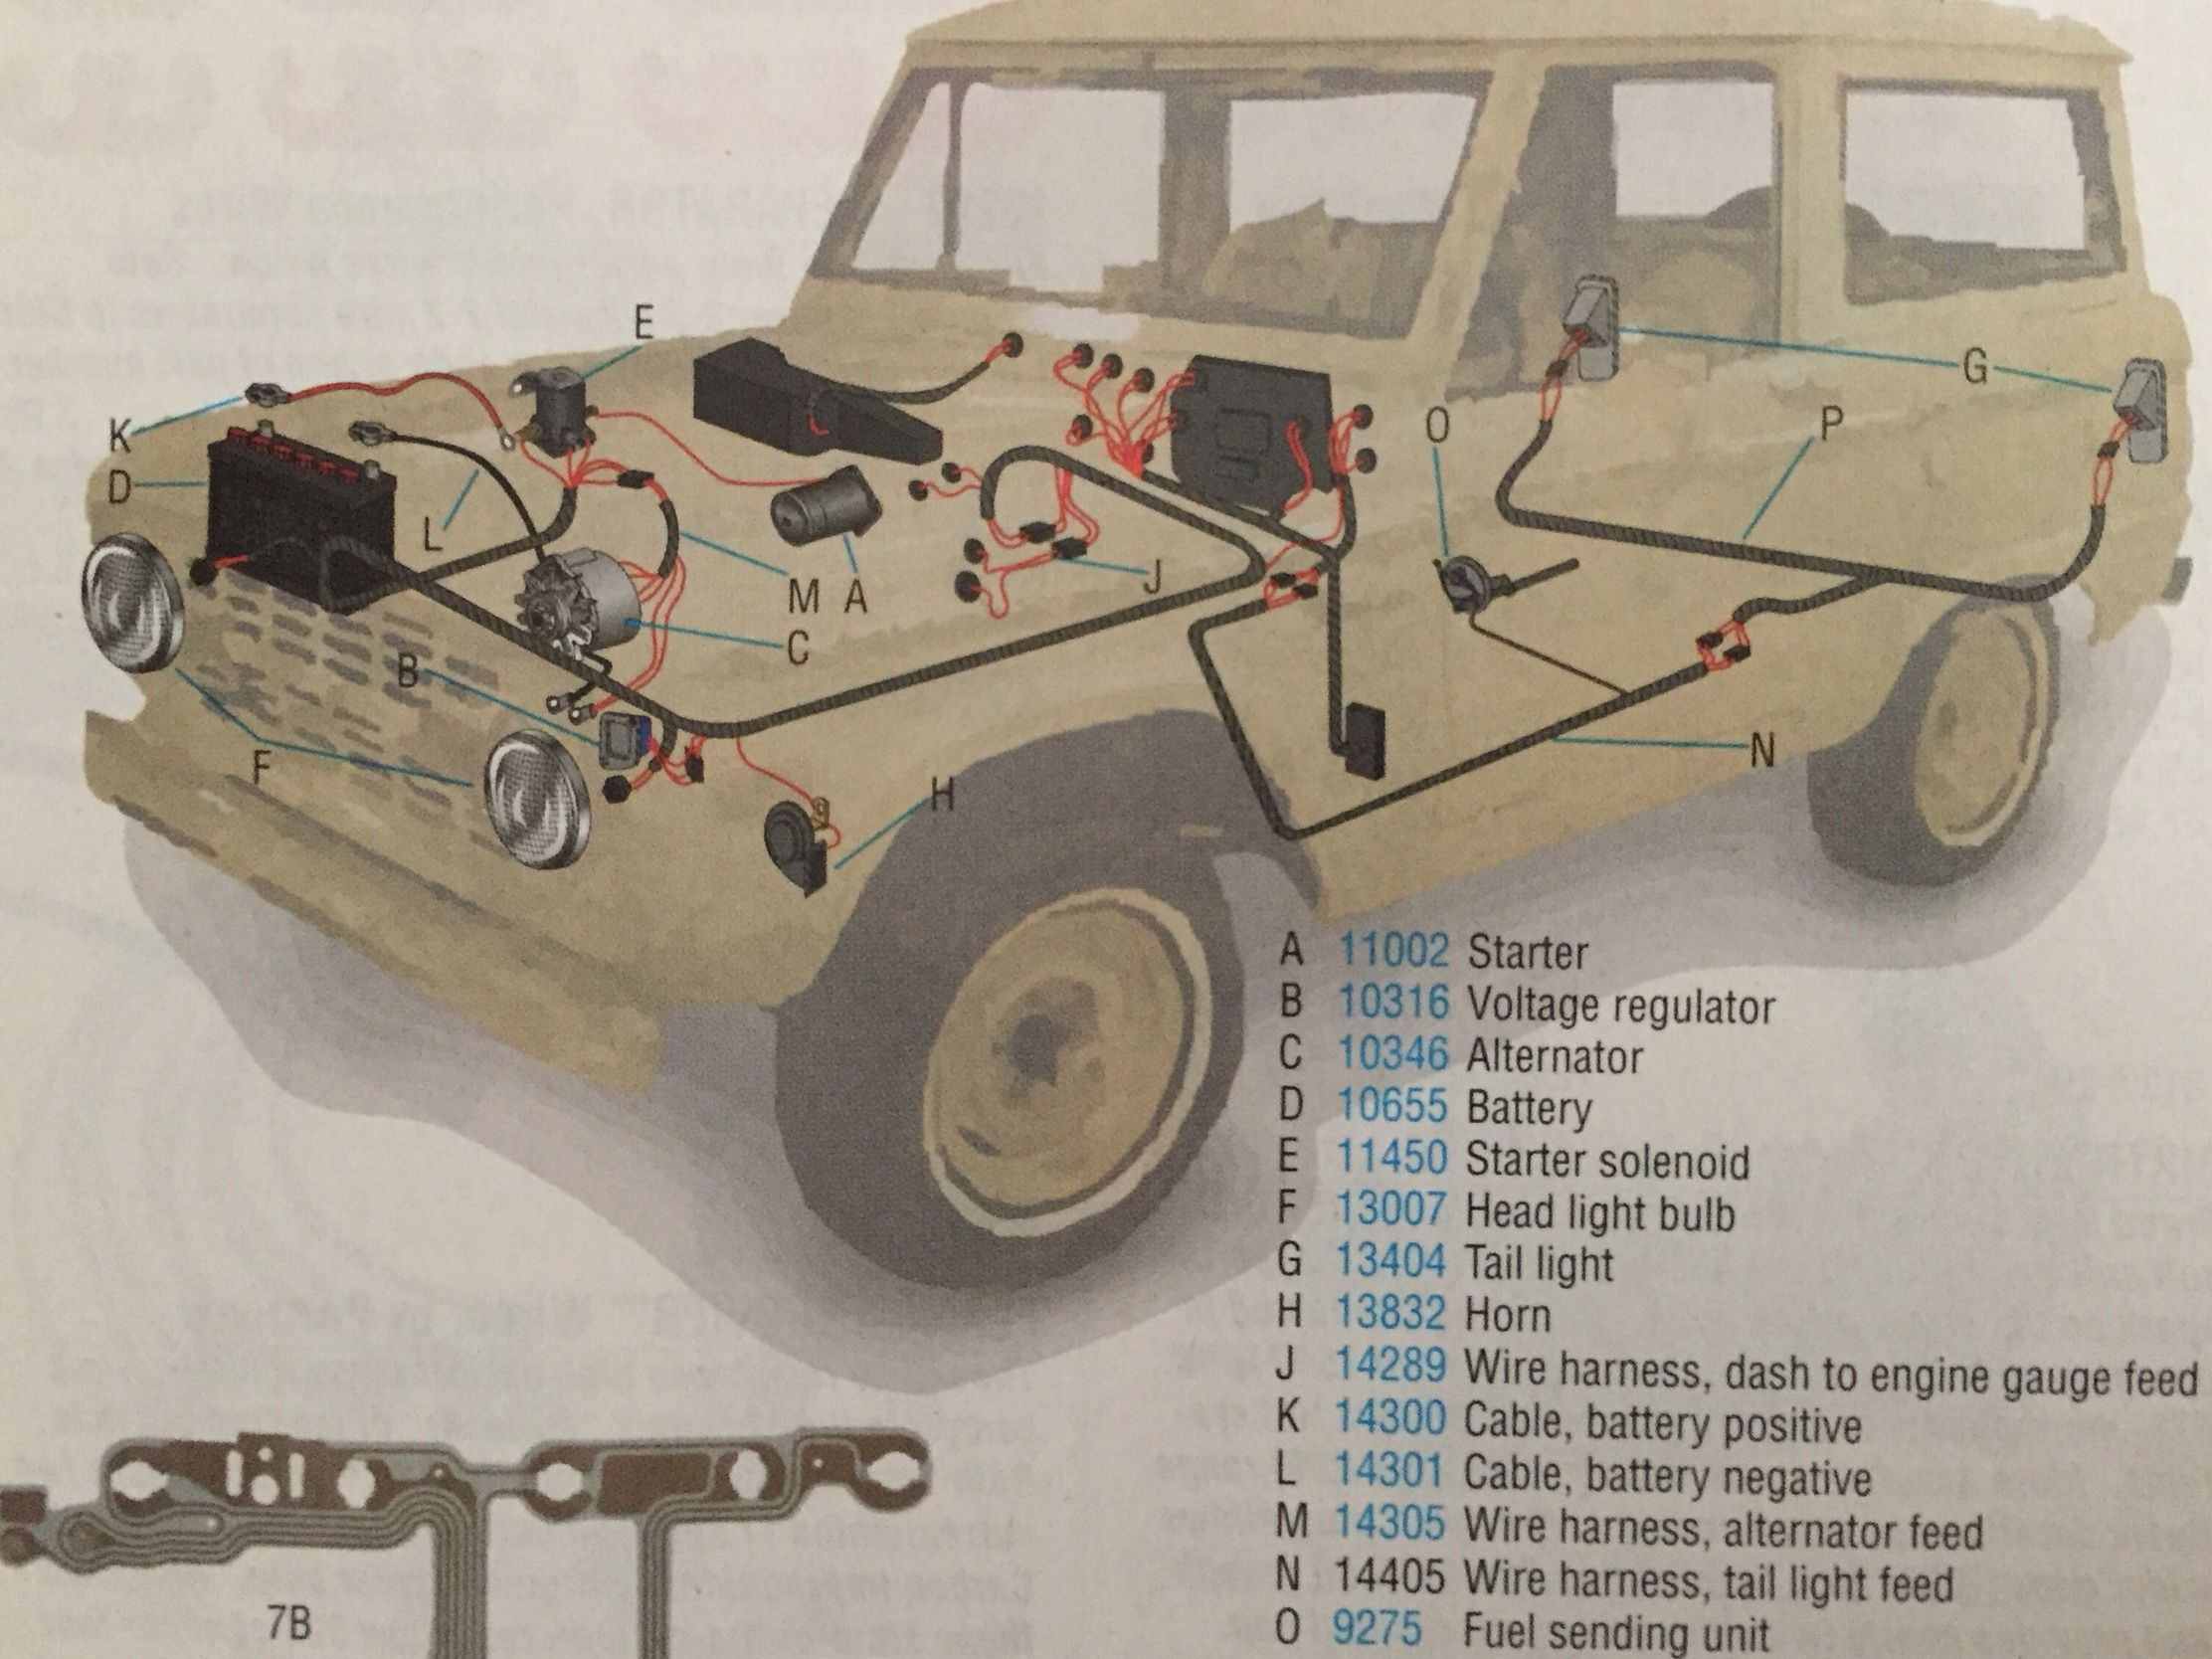 hight resolution of ford bronco electrical system chart broncos old ford bronco schematic diagram 71 eb for the 196677 early ford bronco